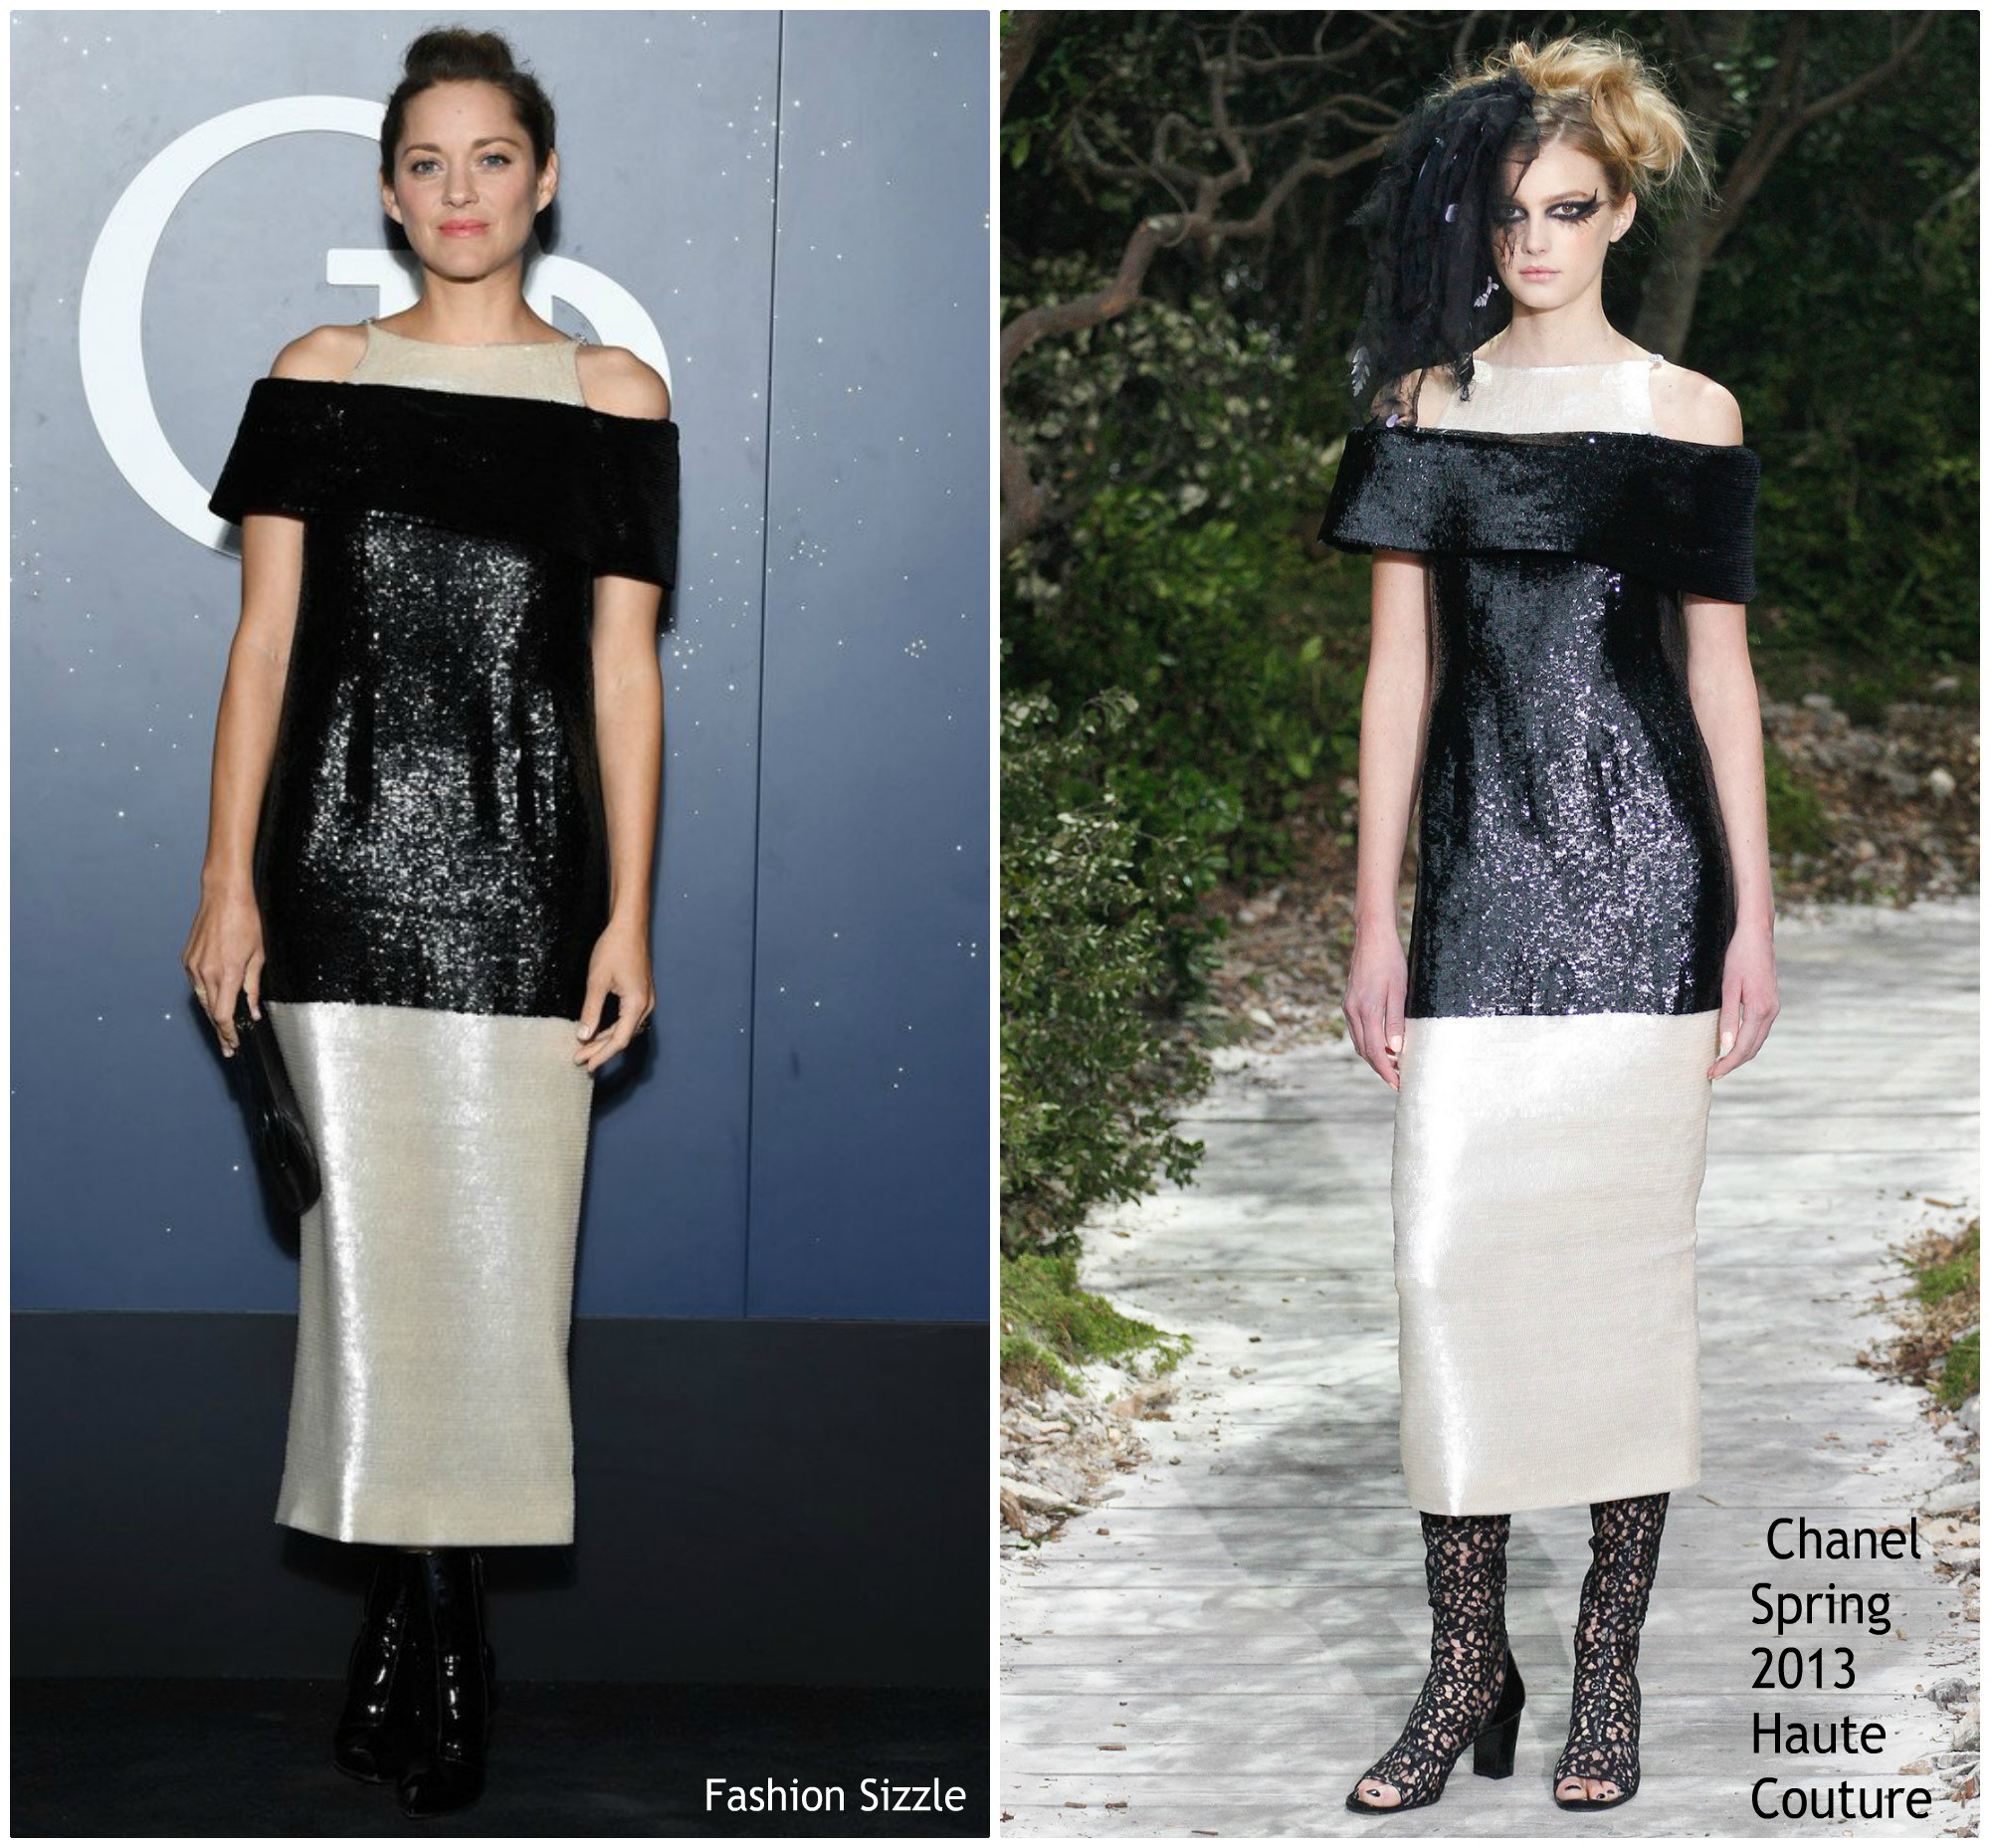 marion-cotillard-in-chanel-haute-couture-opening-season-paris-opera-ballet